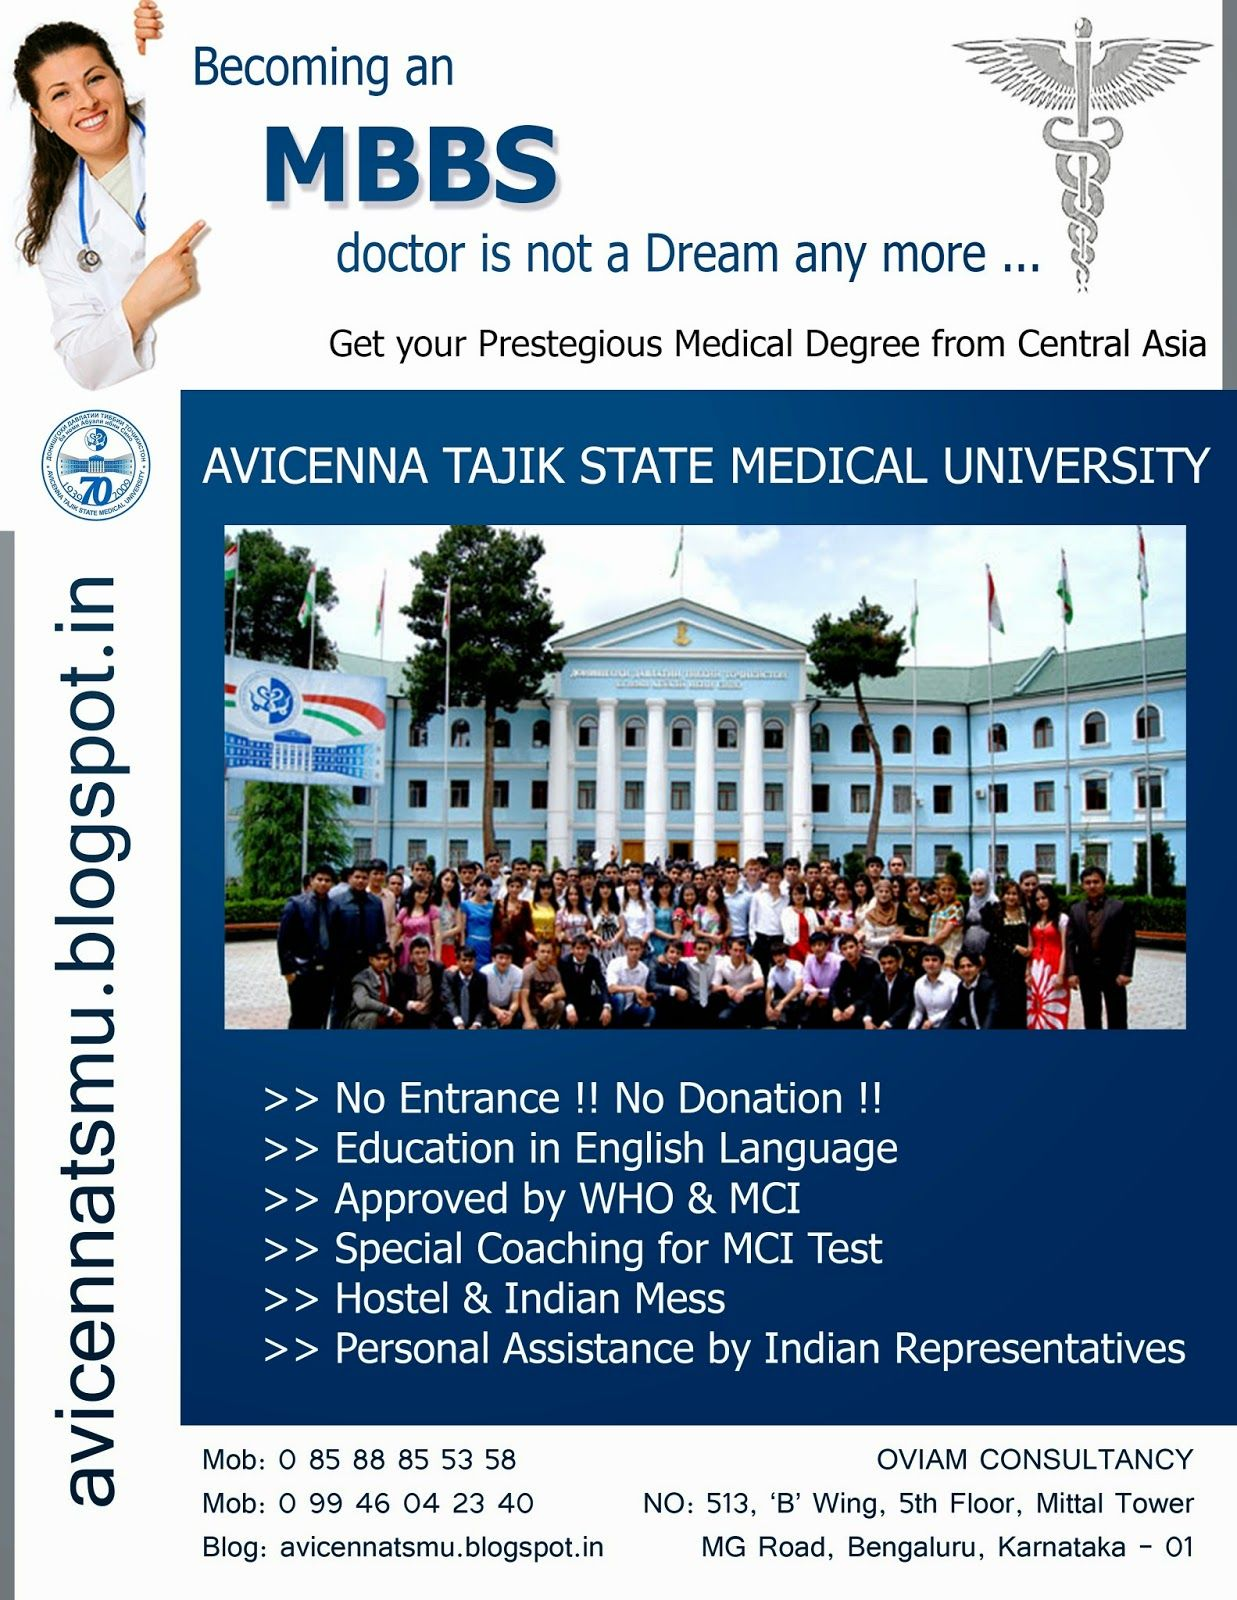 Contact us for MBBS direct admission in Avicenna Tajik State